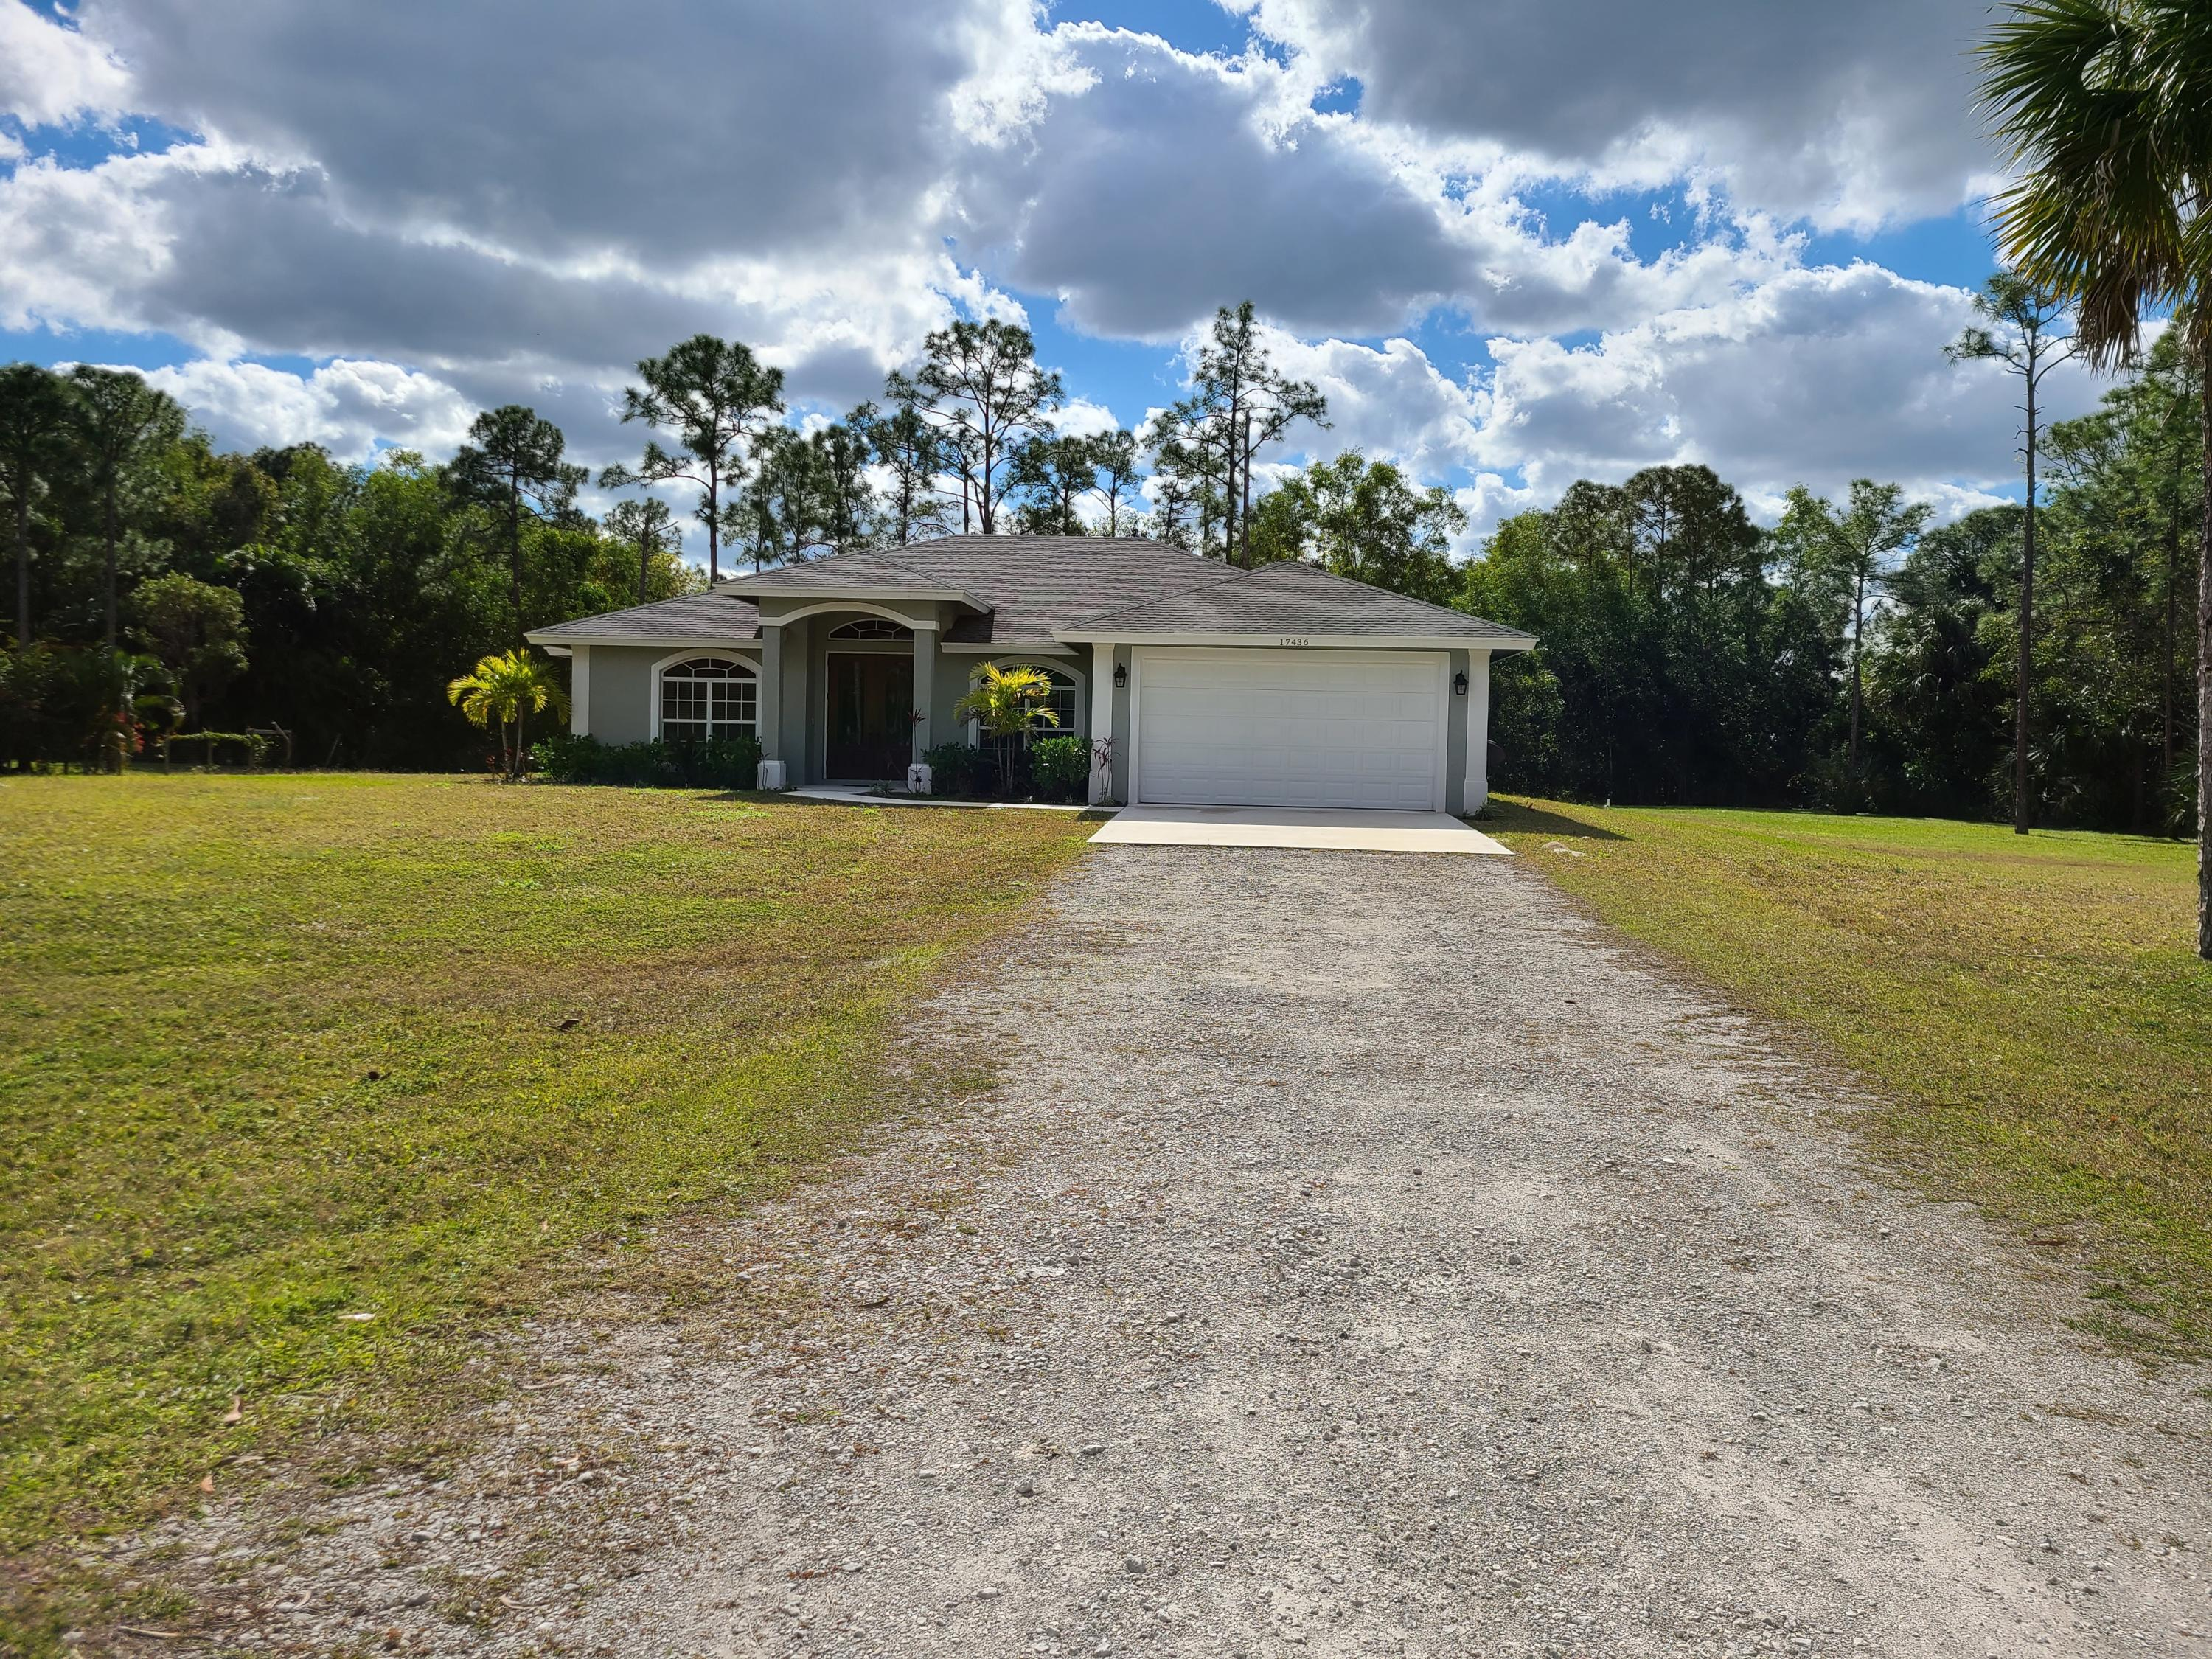 17436 91st Place The Acreage, FL 33470 small photo 19